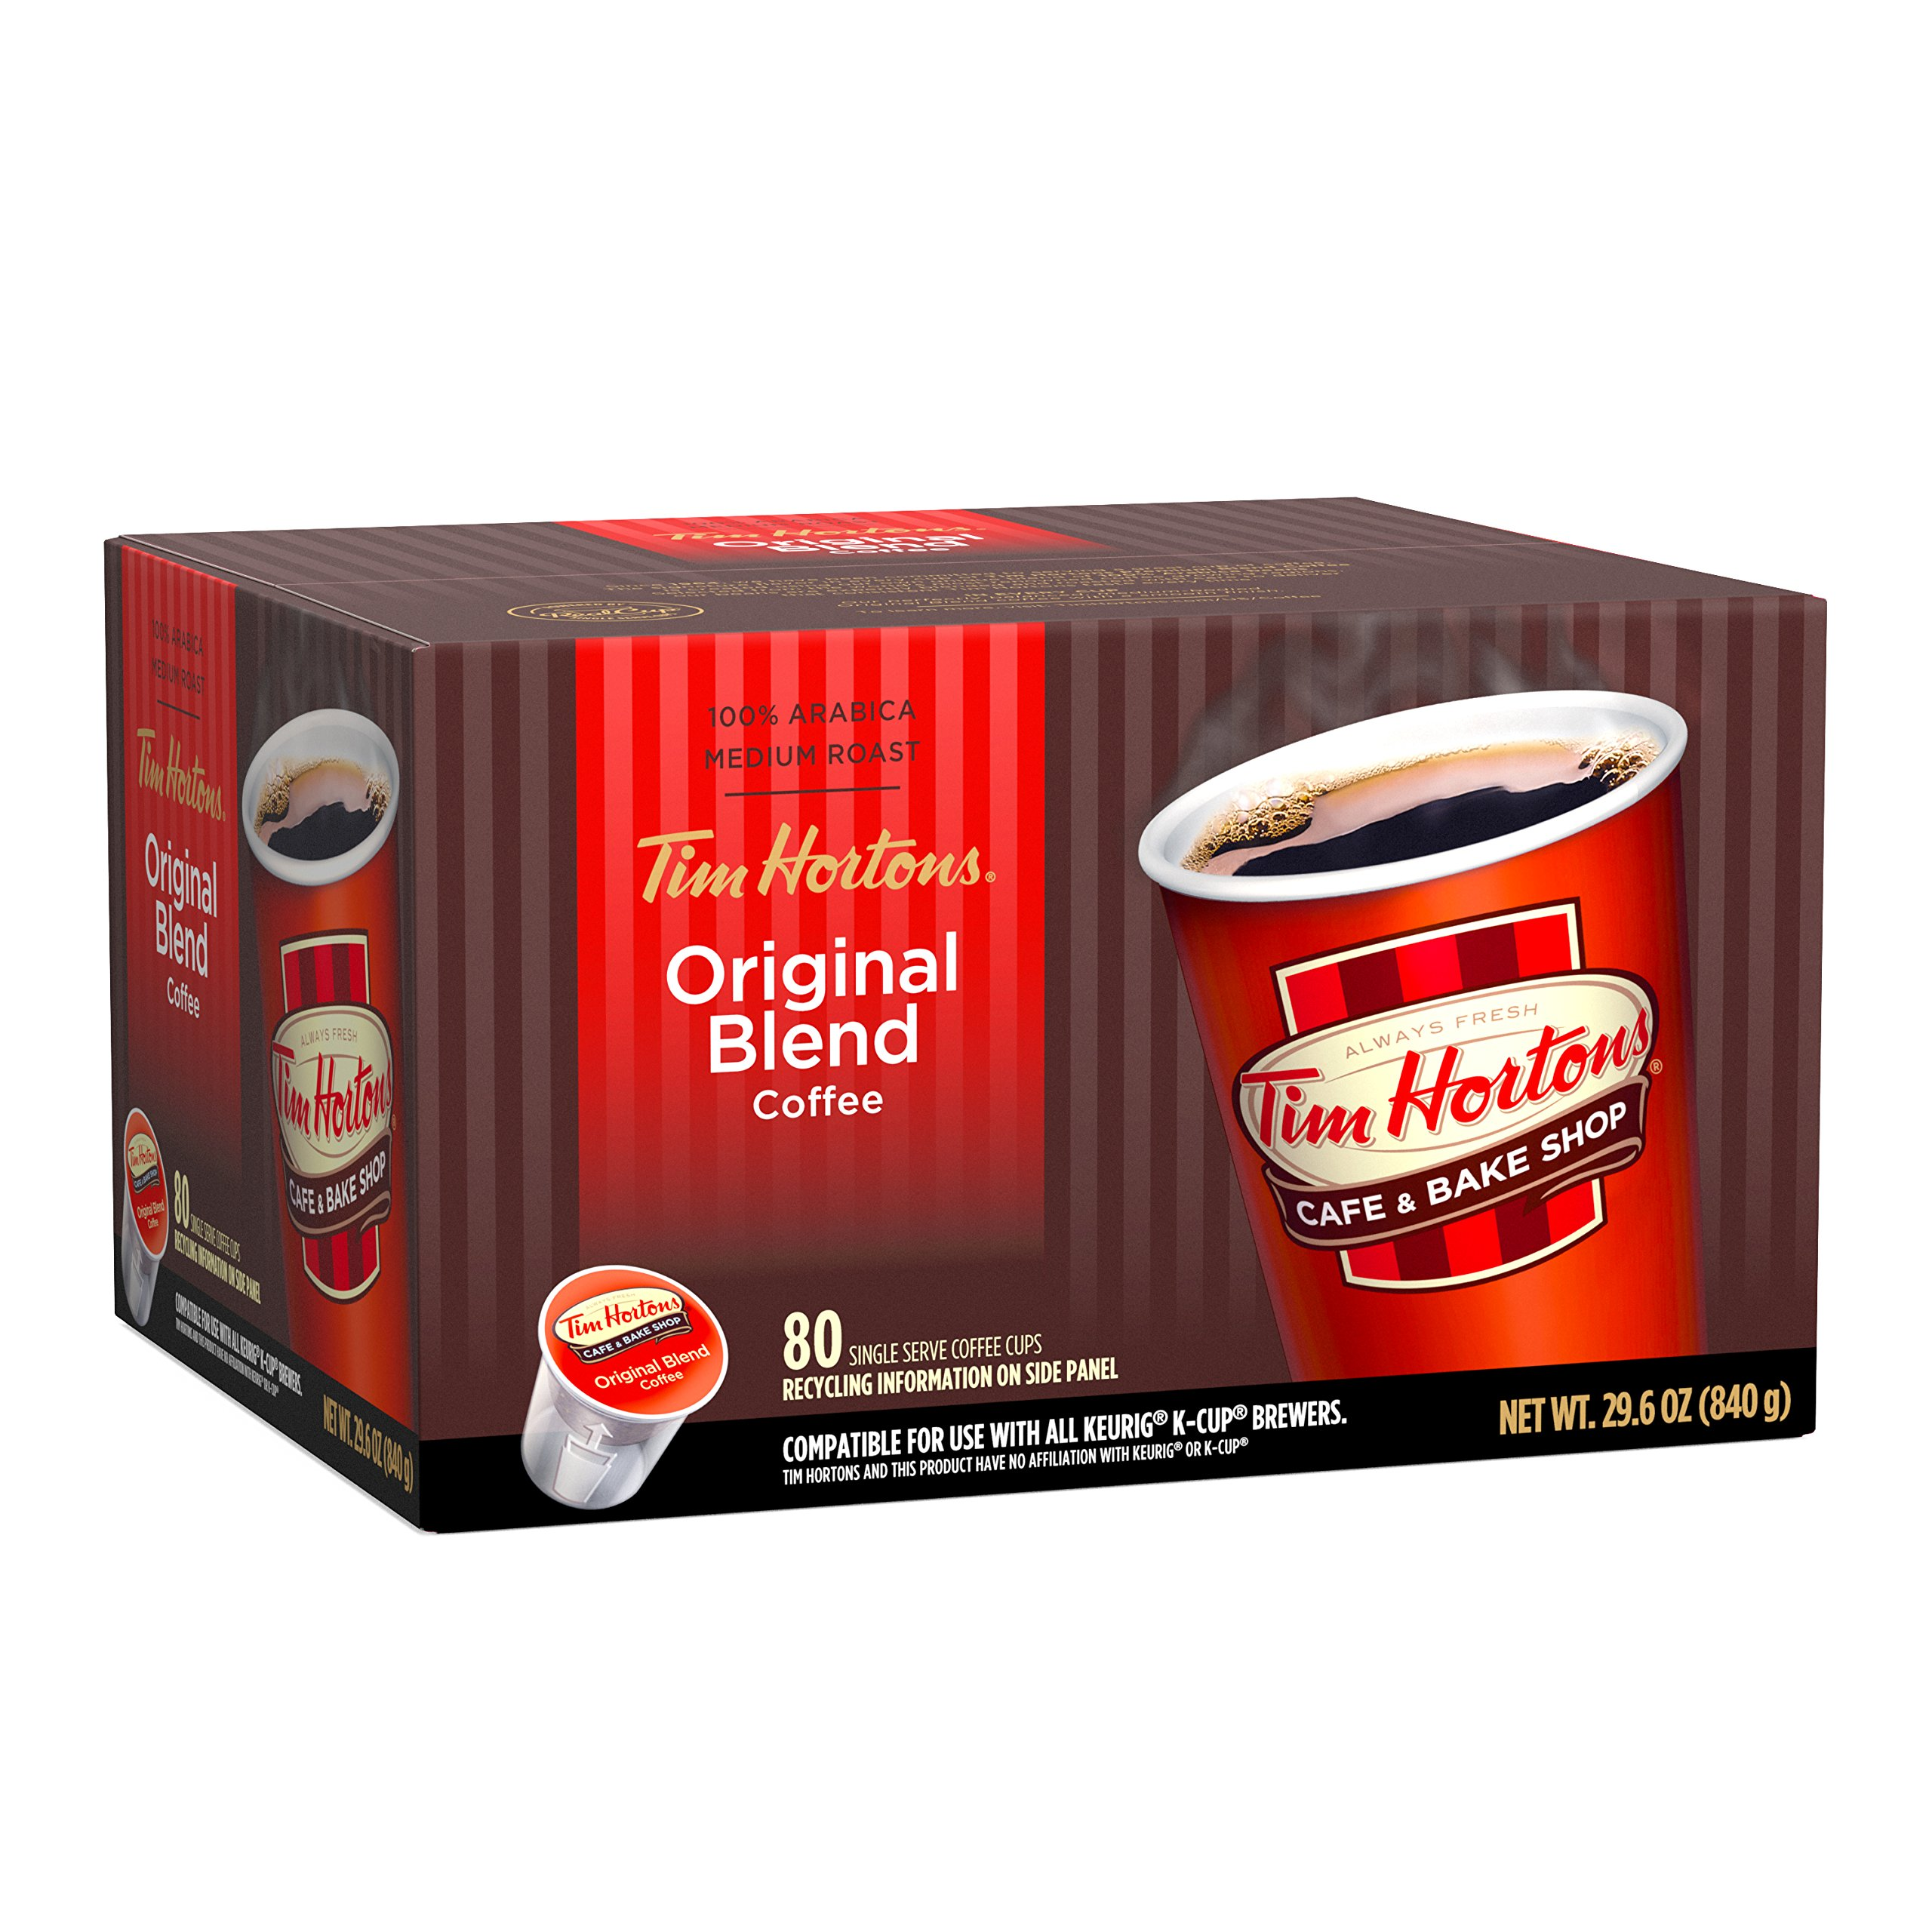 Tim Horton's Single Serve Coffee Cups, Medium Roast, 80 Count by Tim Hortons (Image #3)